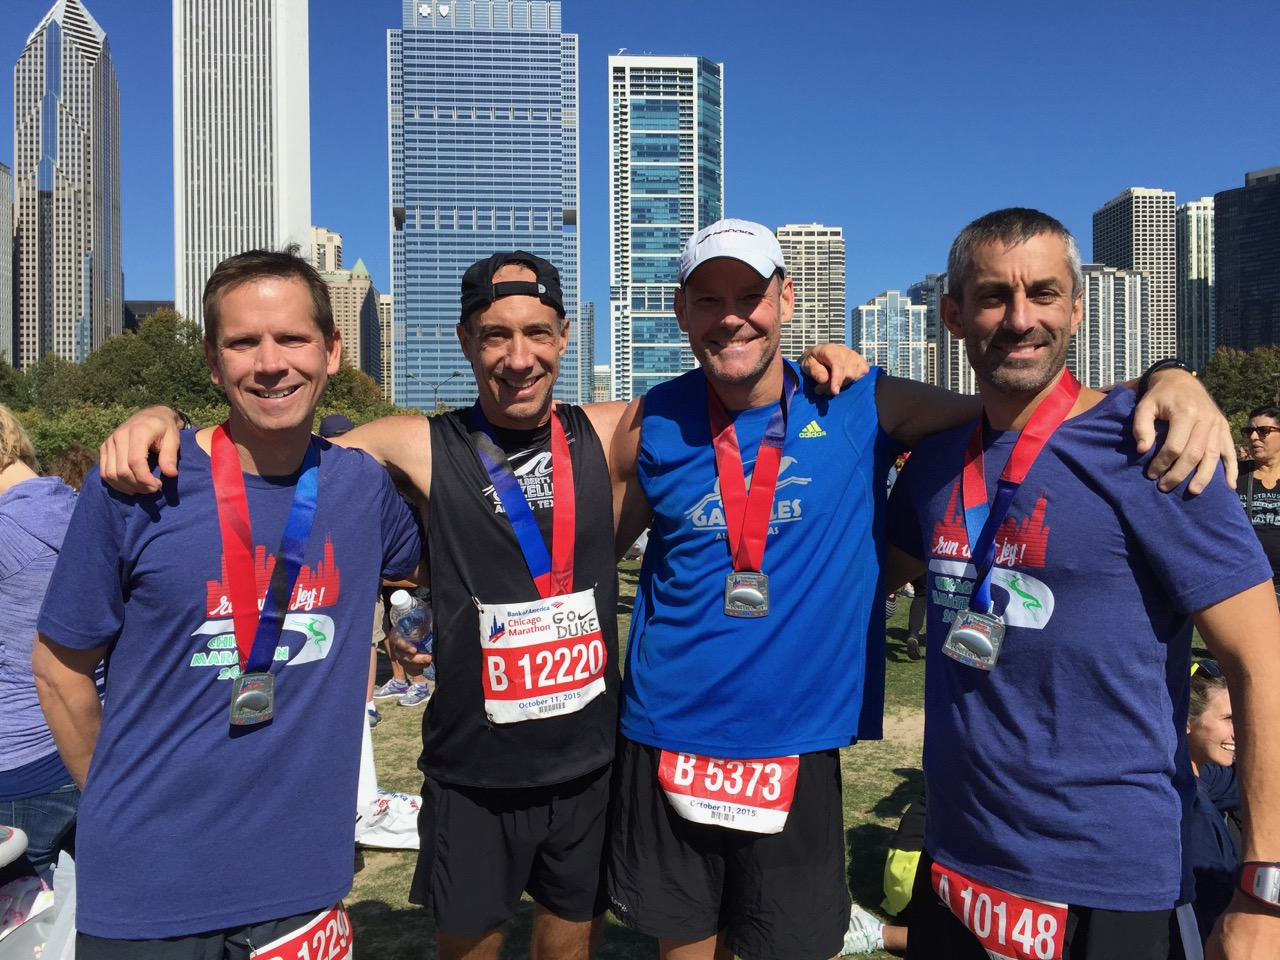 Scott (left) and his running buddies in Chicago, 2015